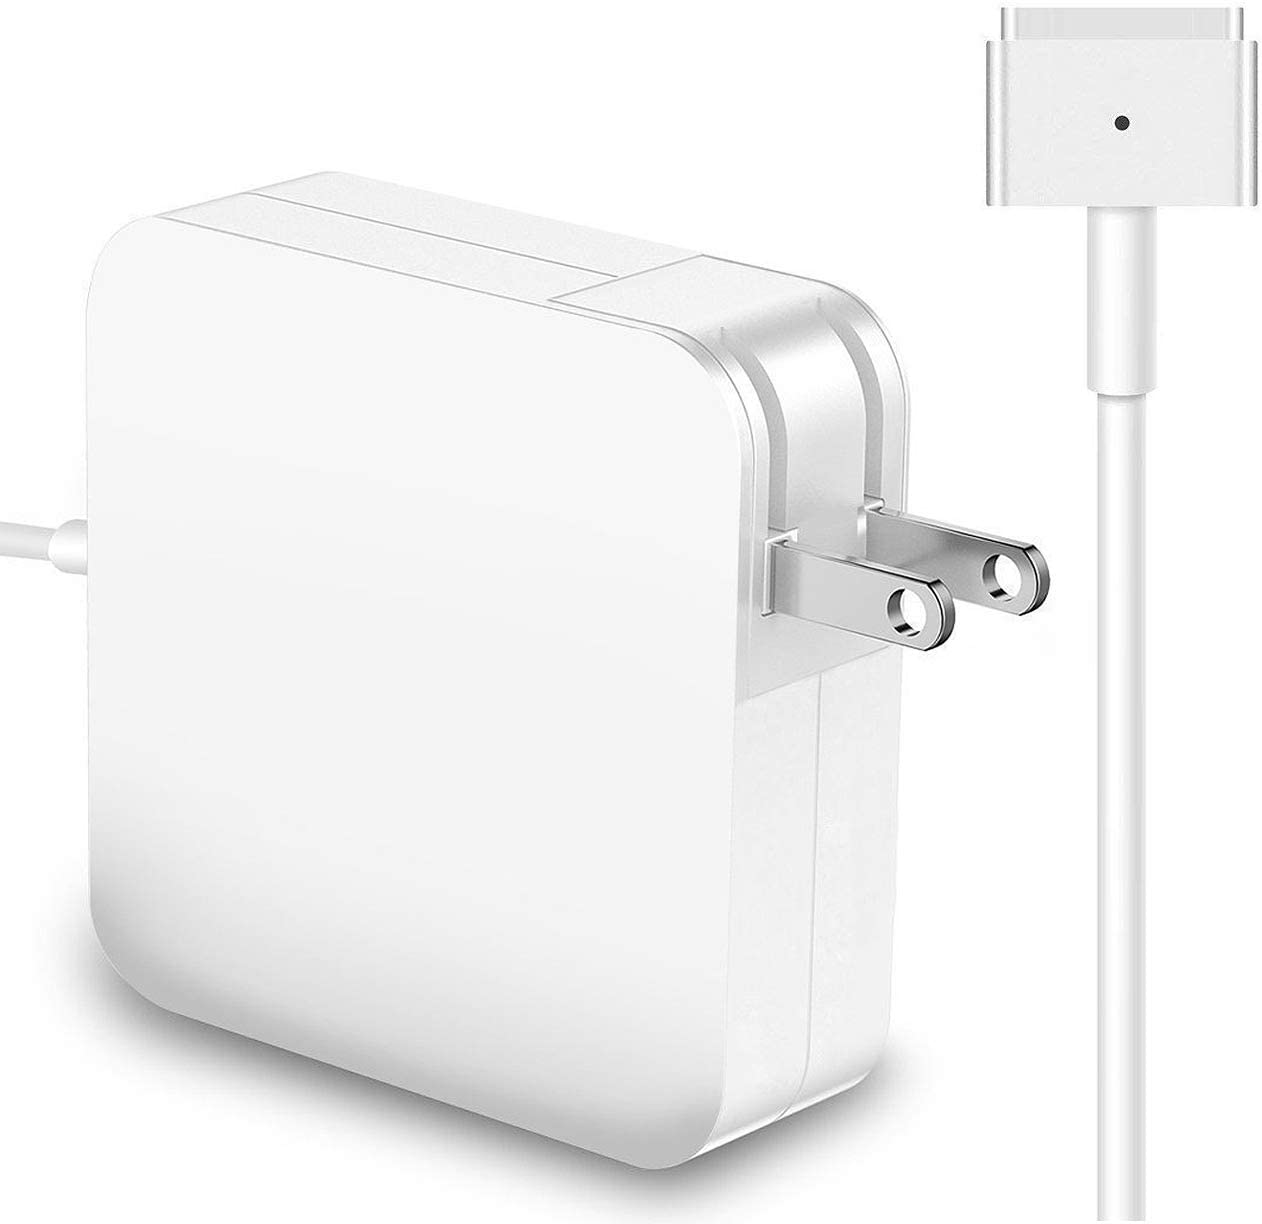 Mac Book Air Charger 45W T-Tip Adapter Power Adapter Magsafe 2 Connector Suitable for Mac Book Air 11-inch and 13-inch After Mid 2012